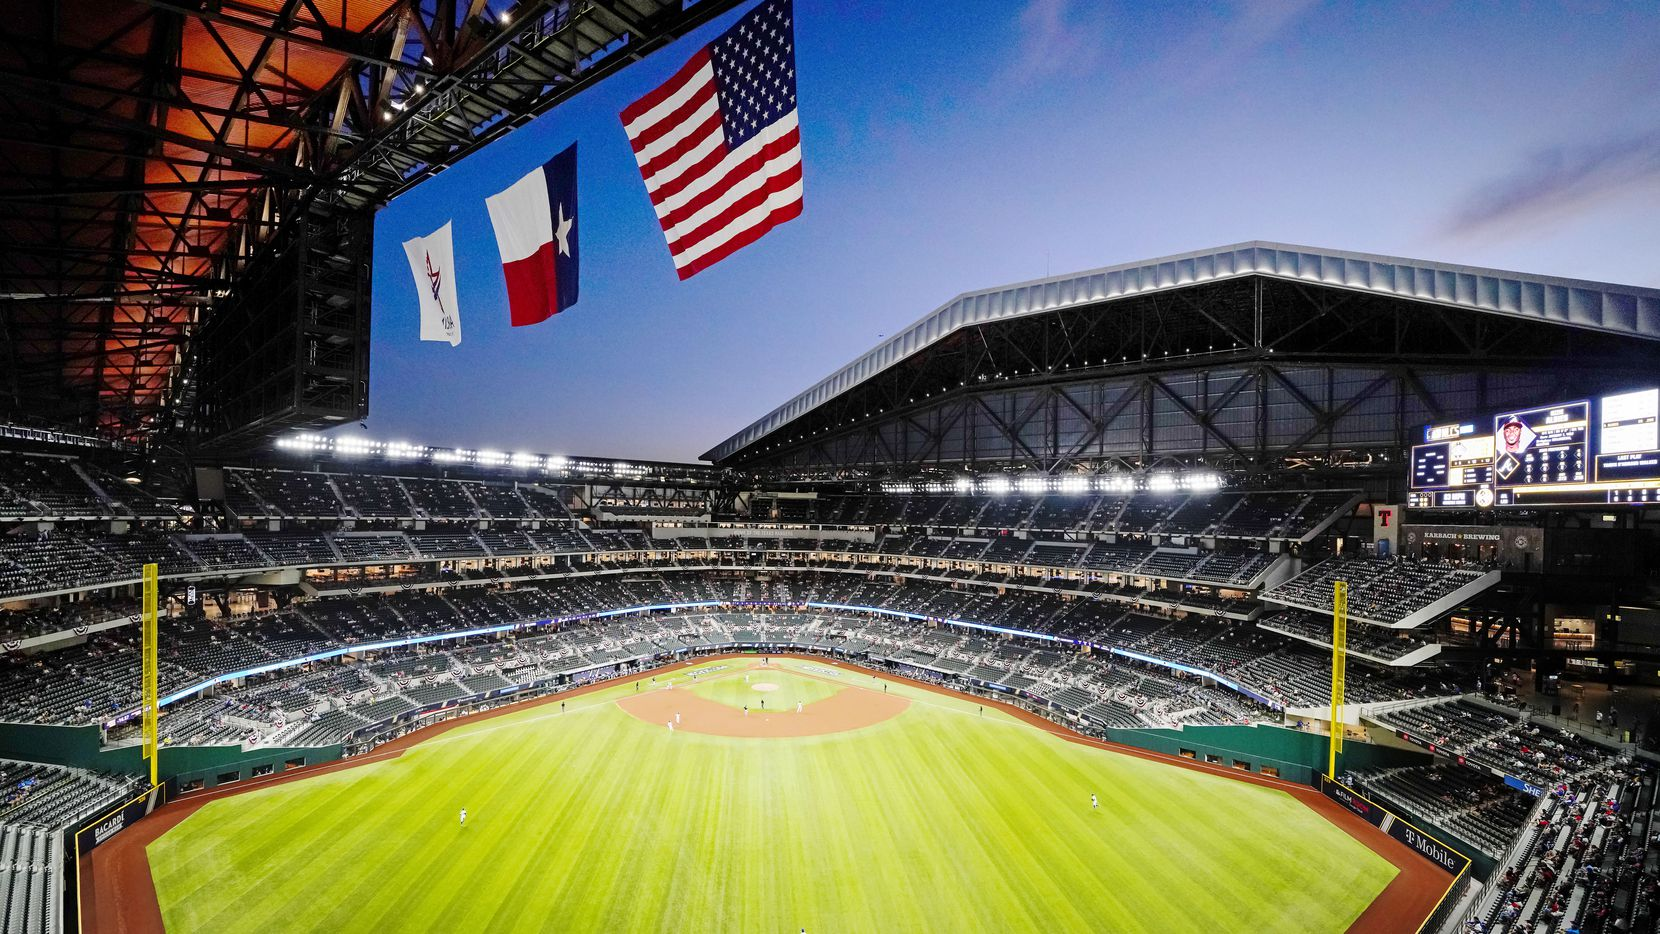 Mark Lamster says Globe Life Field is a great place to view a ballgame, the ultimate test of a stadium. The venue is seen with the roof open on a beautiful fall night during Game 1 of the National League Championship Series on Oct. 12, 2020 in Arlington, Texas.